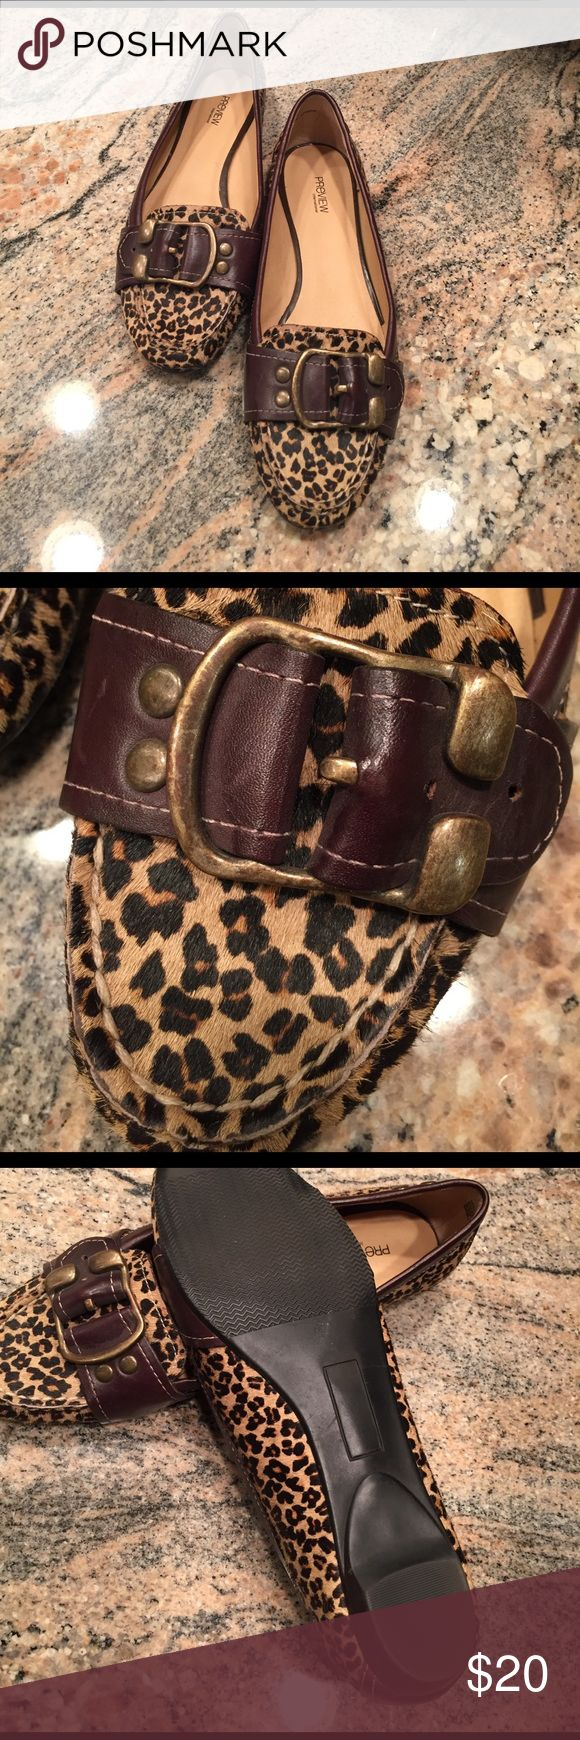 Preview Leopard hair on hide leather upper Leopard hair on hide leather upper. Worn once. Size 6.5 Preview Shoes Flats & Loafers